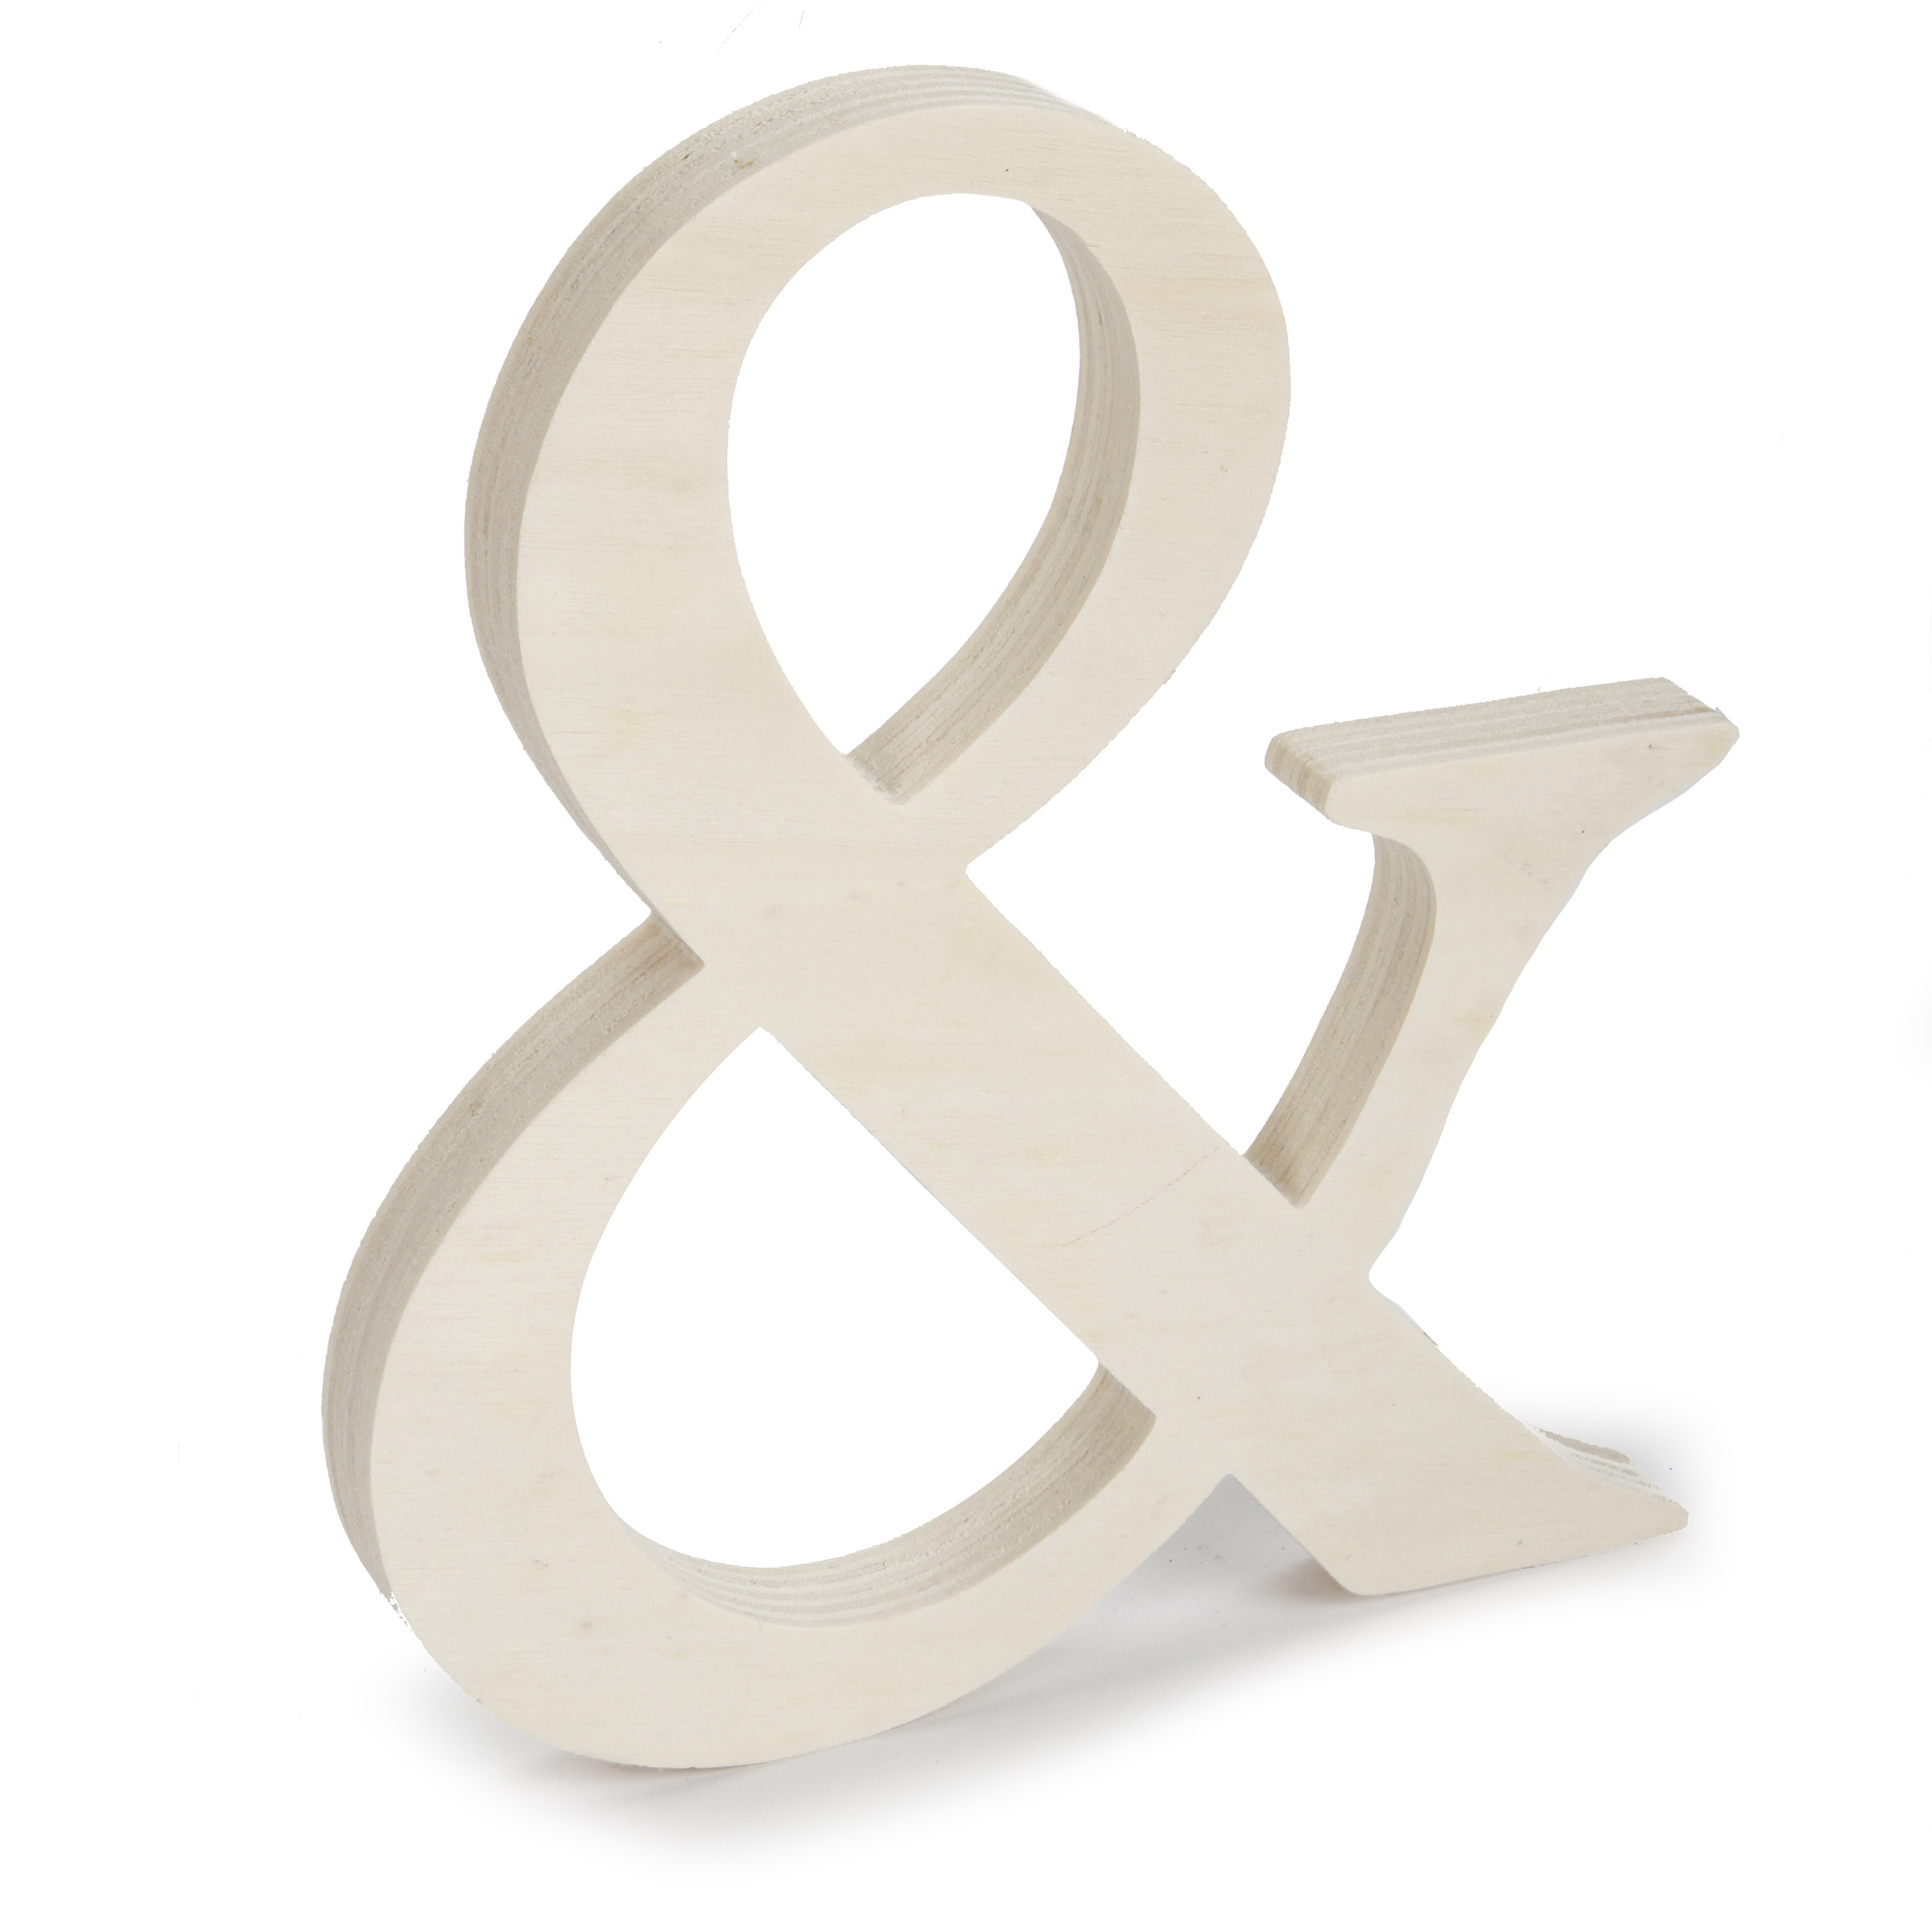 Fancy Unfinished Wood Letter Ampersand Symbol 7 1 2 Inches